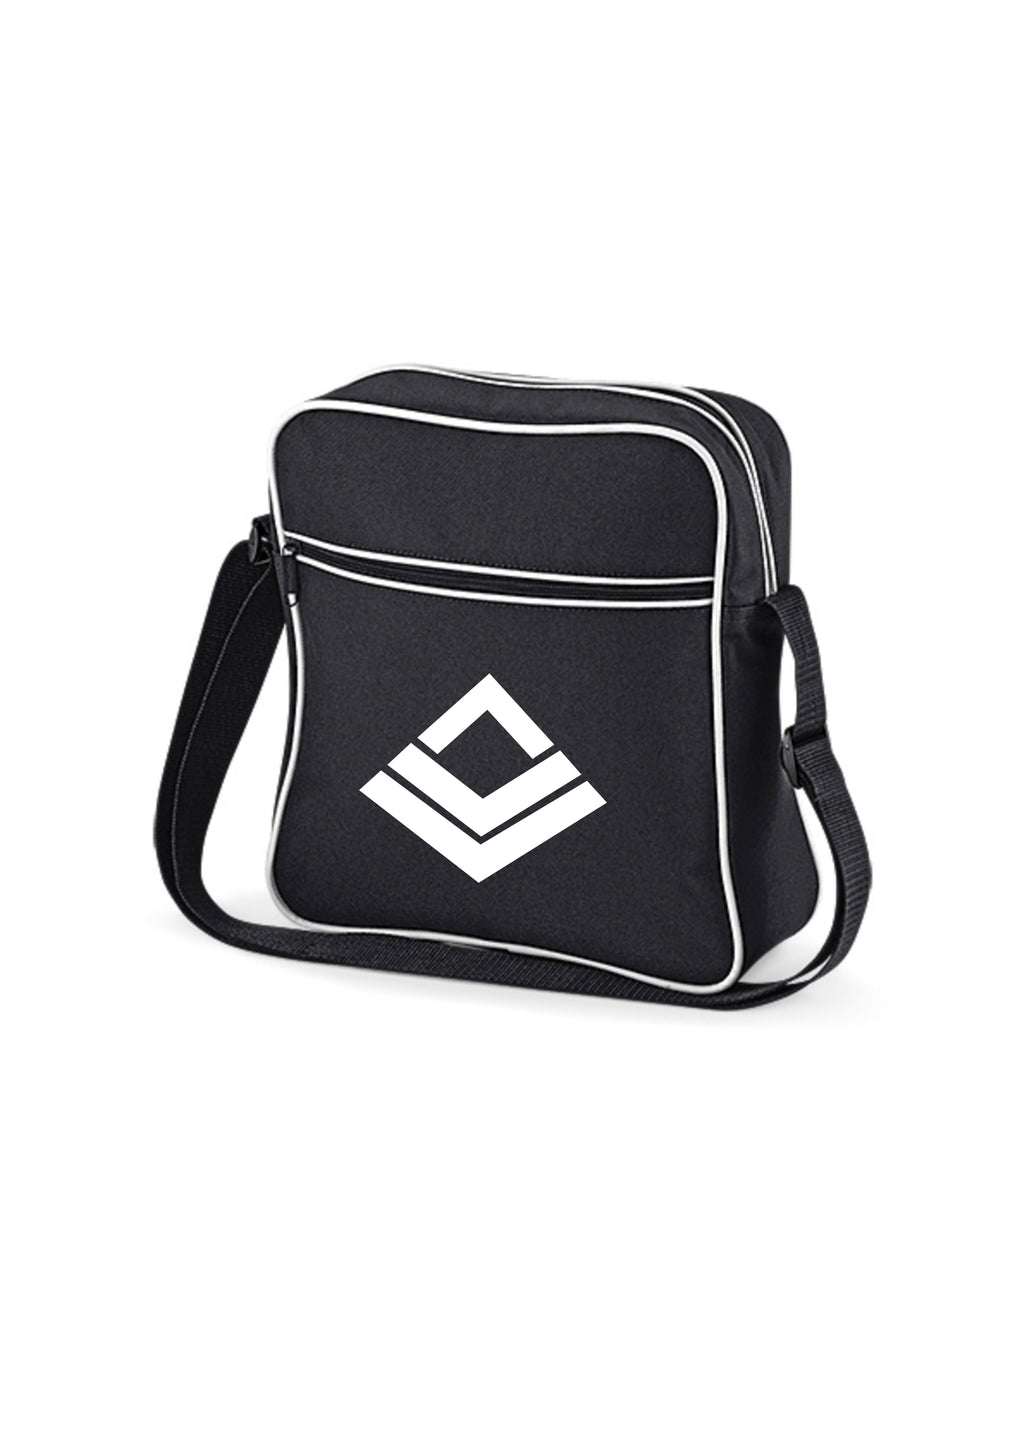 Swaggerlicious Active Black and White  Flight Bag - swaggerlicious-clothing.com